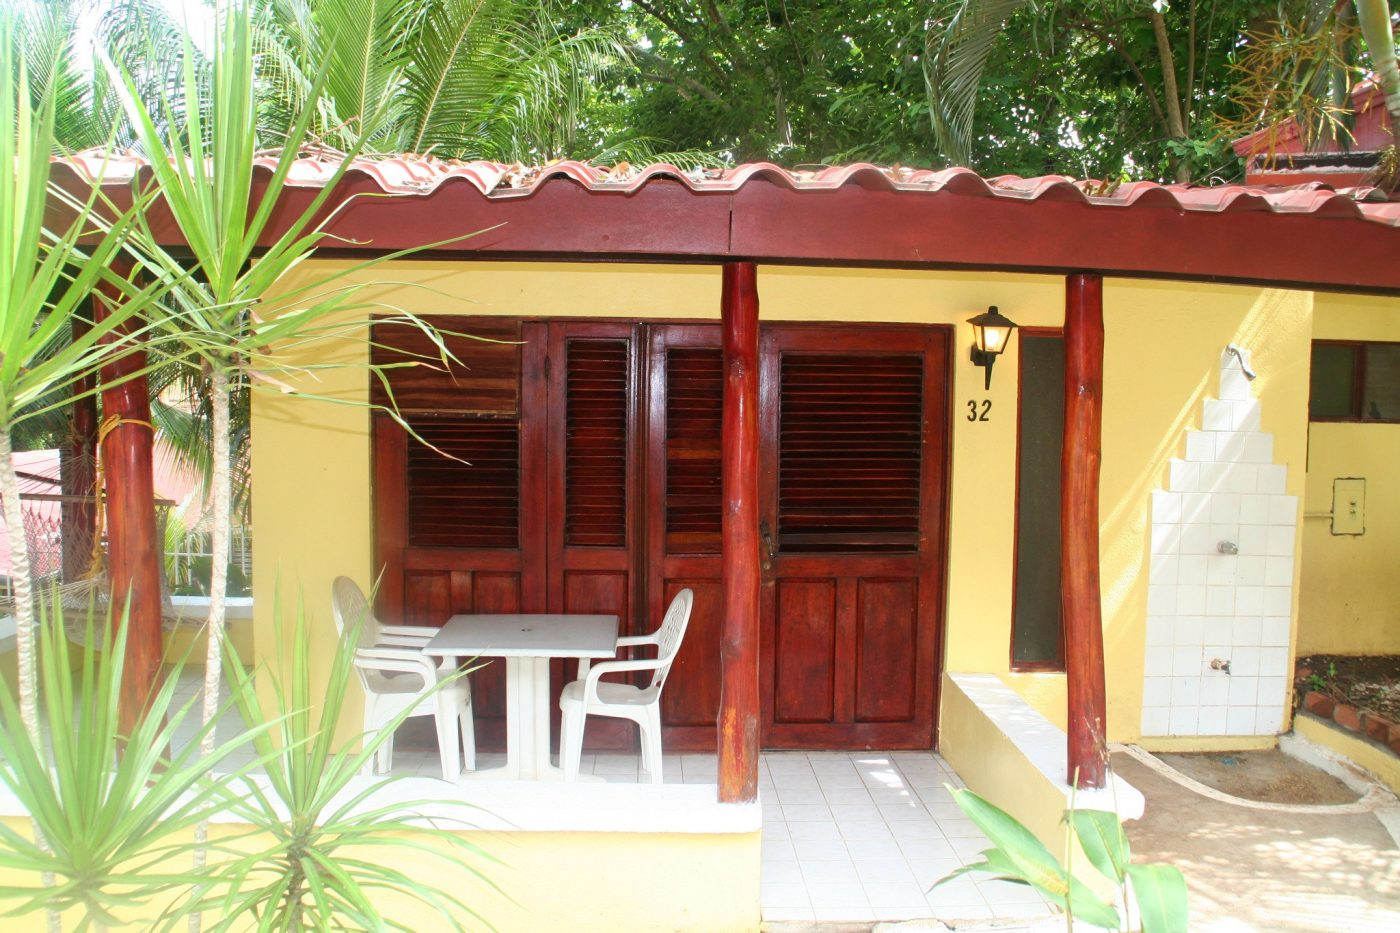 Hotels in Tamarindo Costa Pura Vida Cabin https://www.flickr.com/photos/withaghost/1431064712/